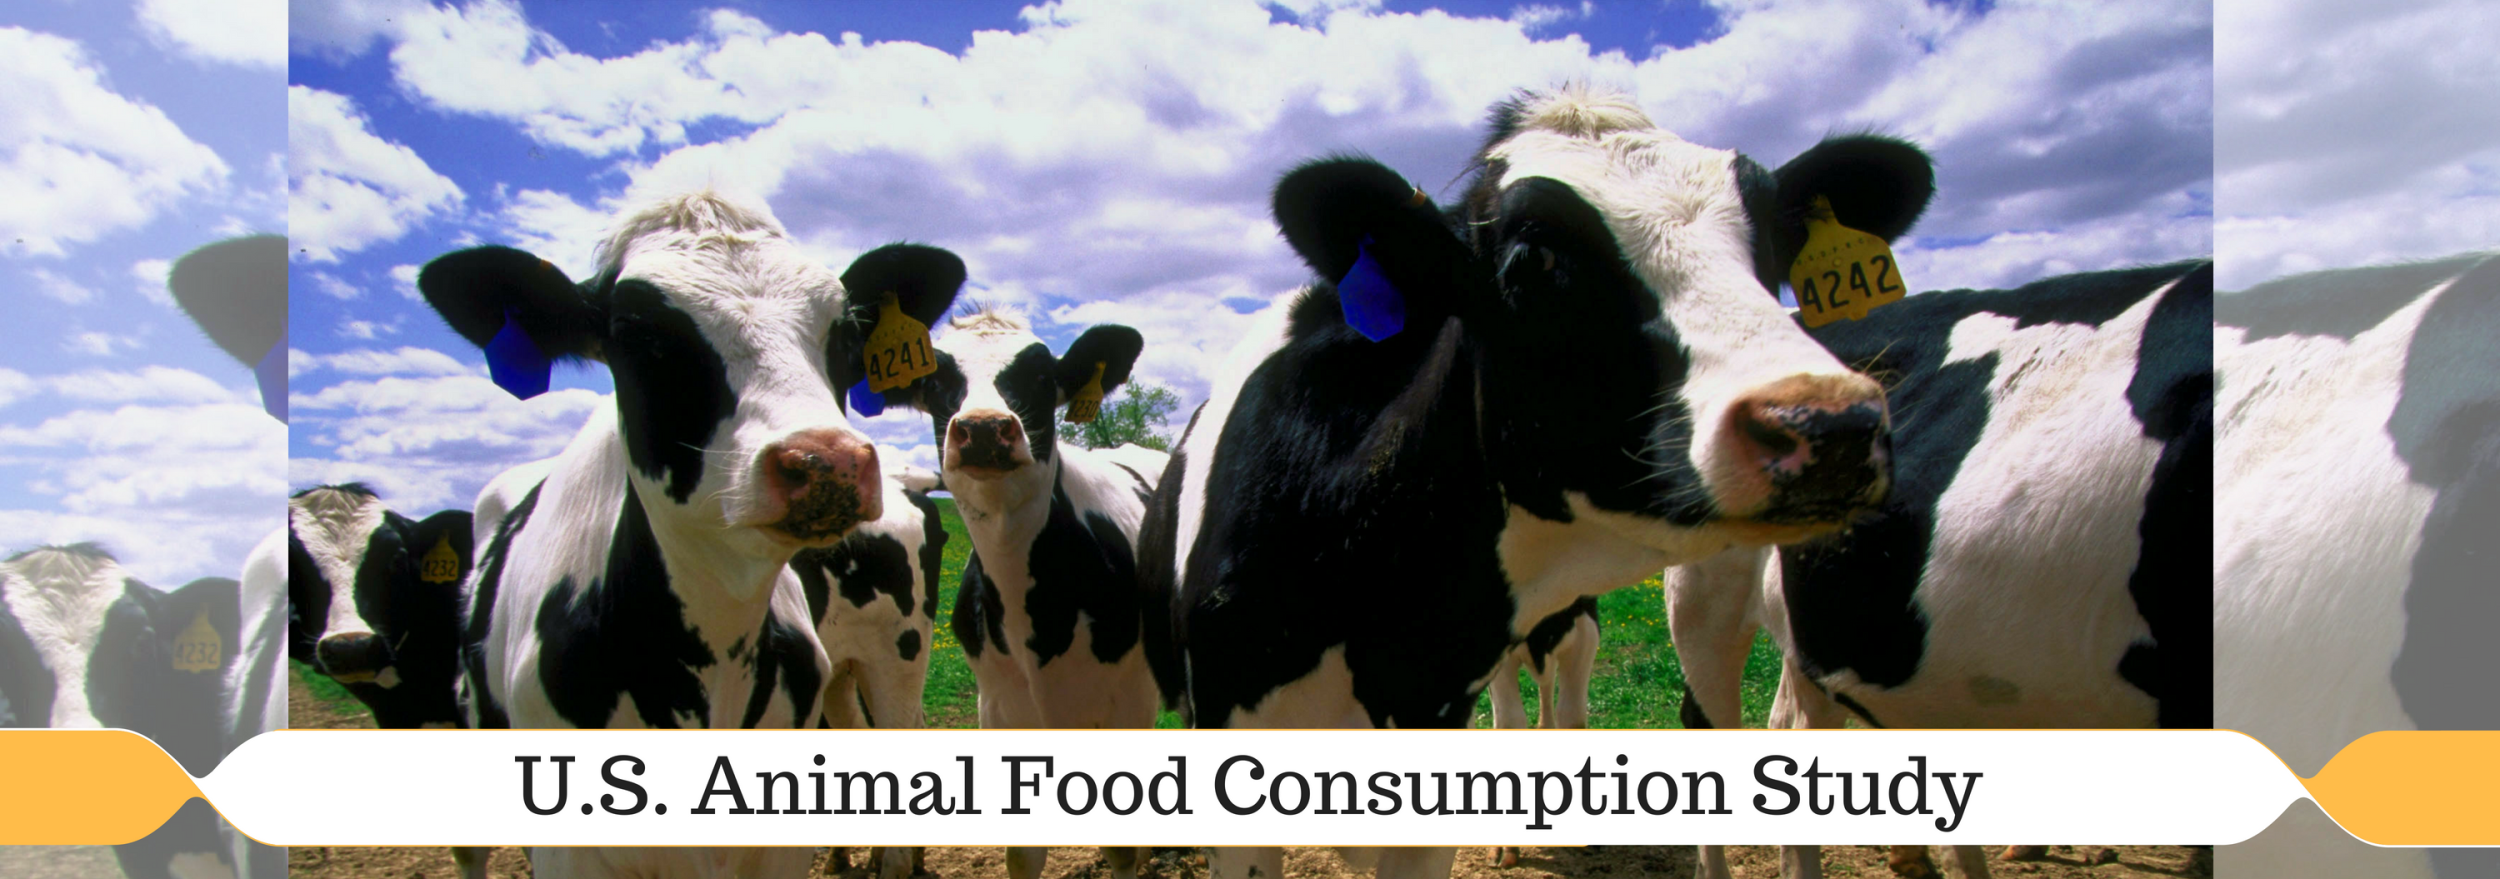 U.S Animal Food Consumption